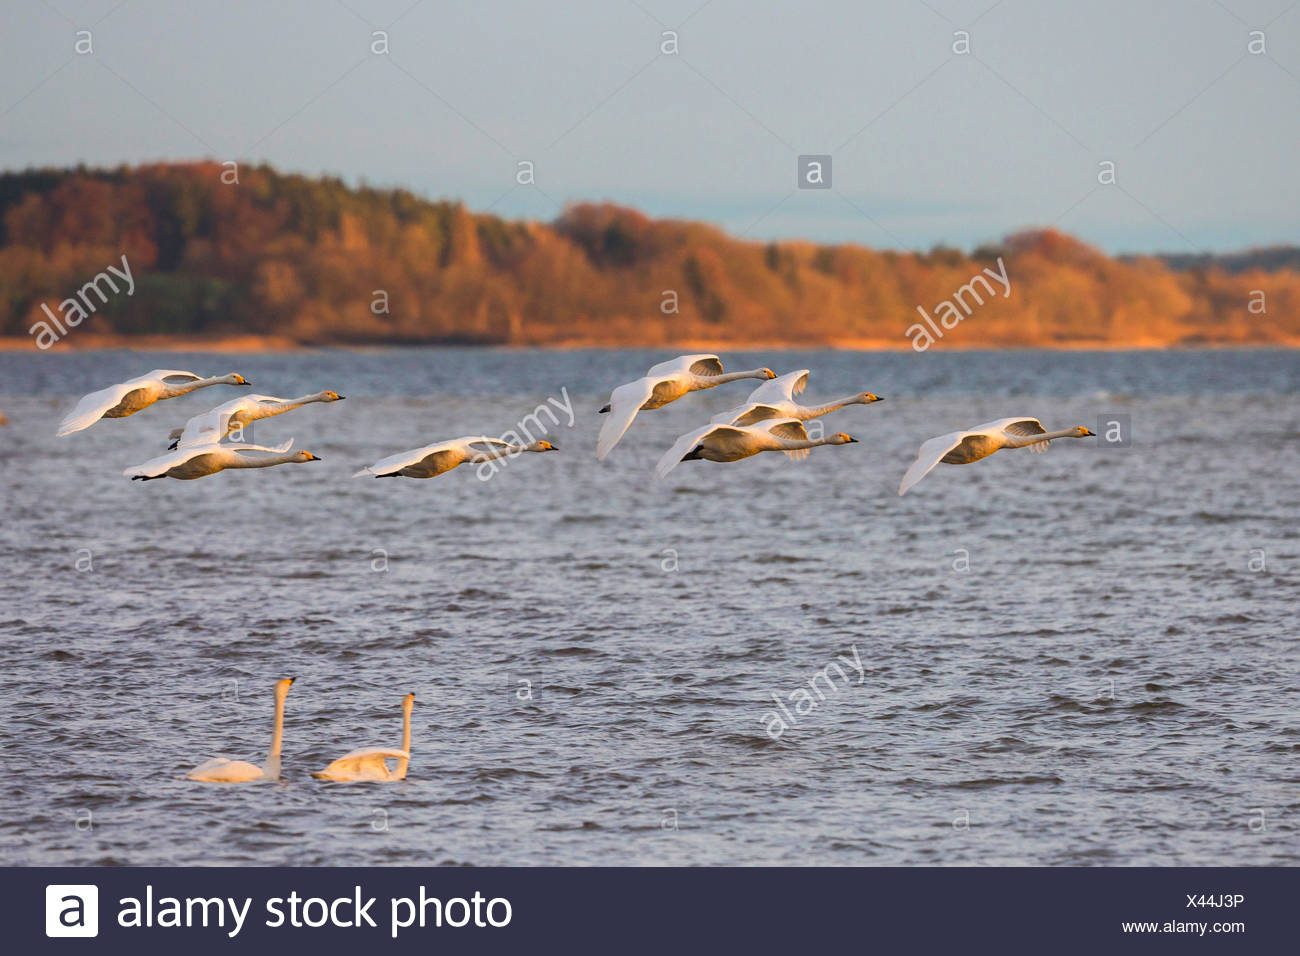 whooper swan (Cygnus cygnus), flock flying over a swimming couple in the evening light, Germany, Bavaria, Lake Chiemsee Stock Photo